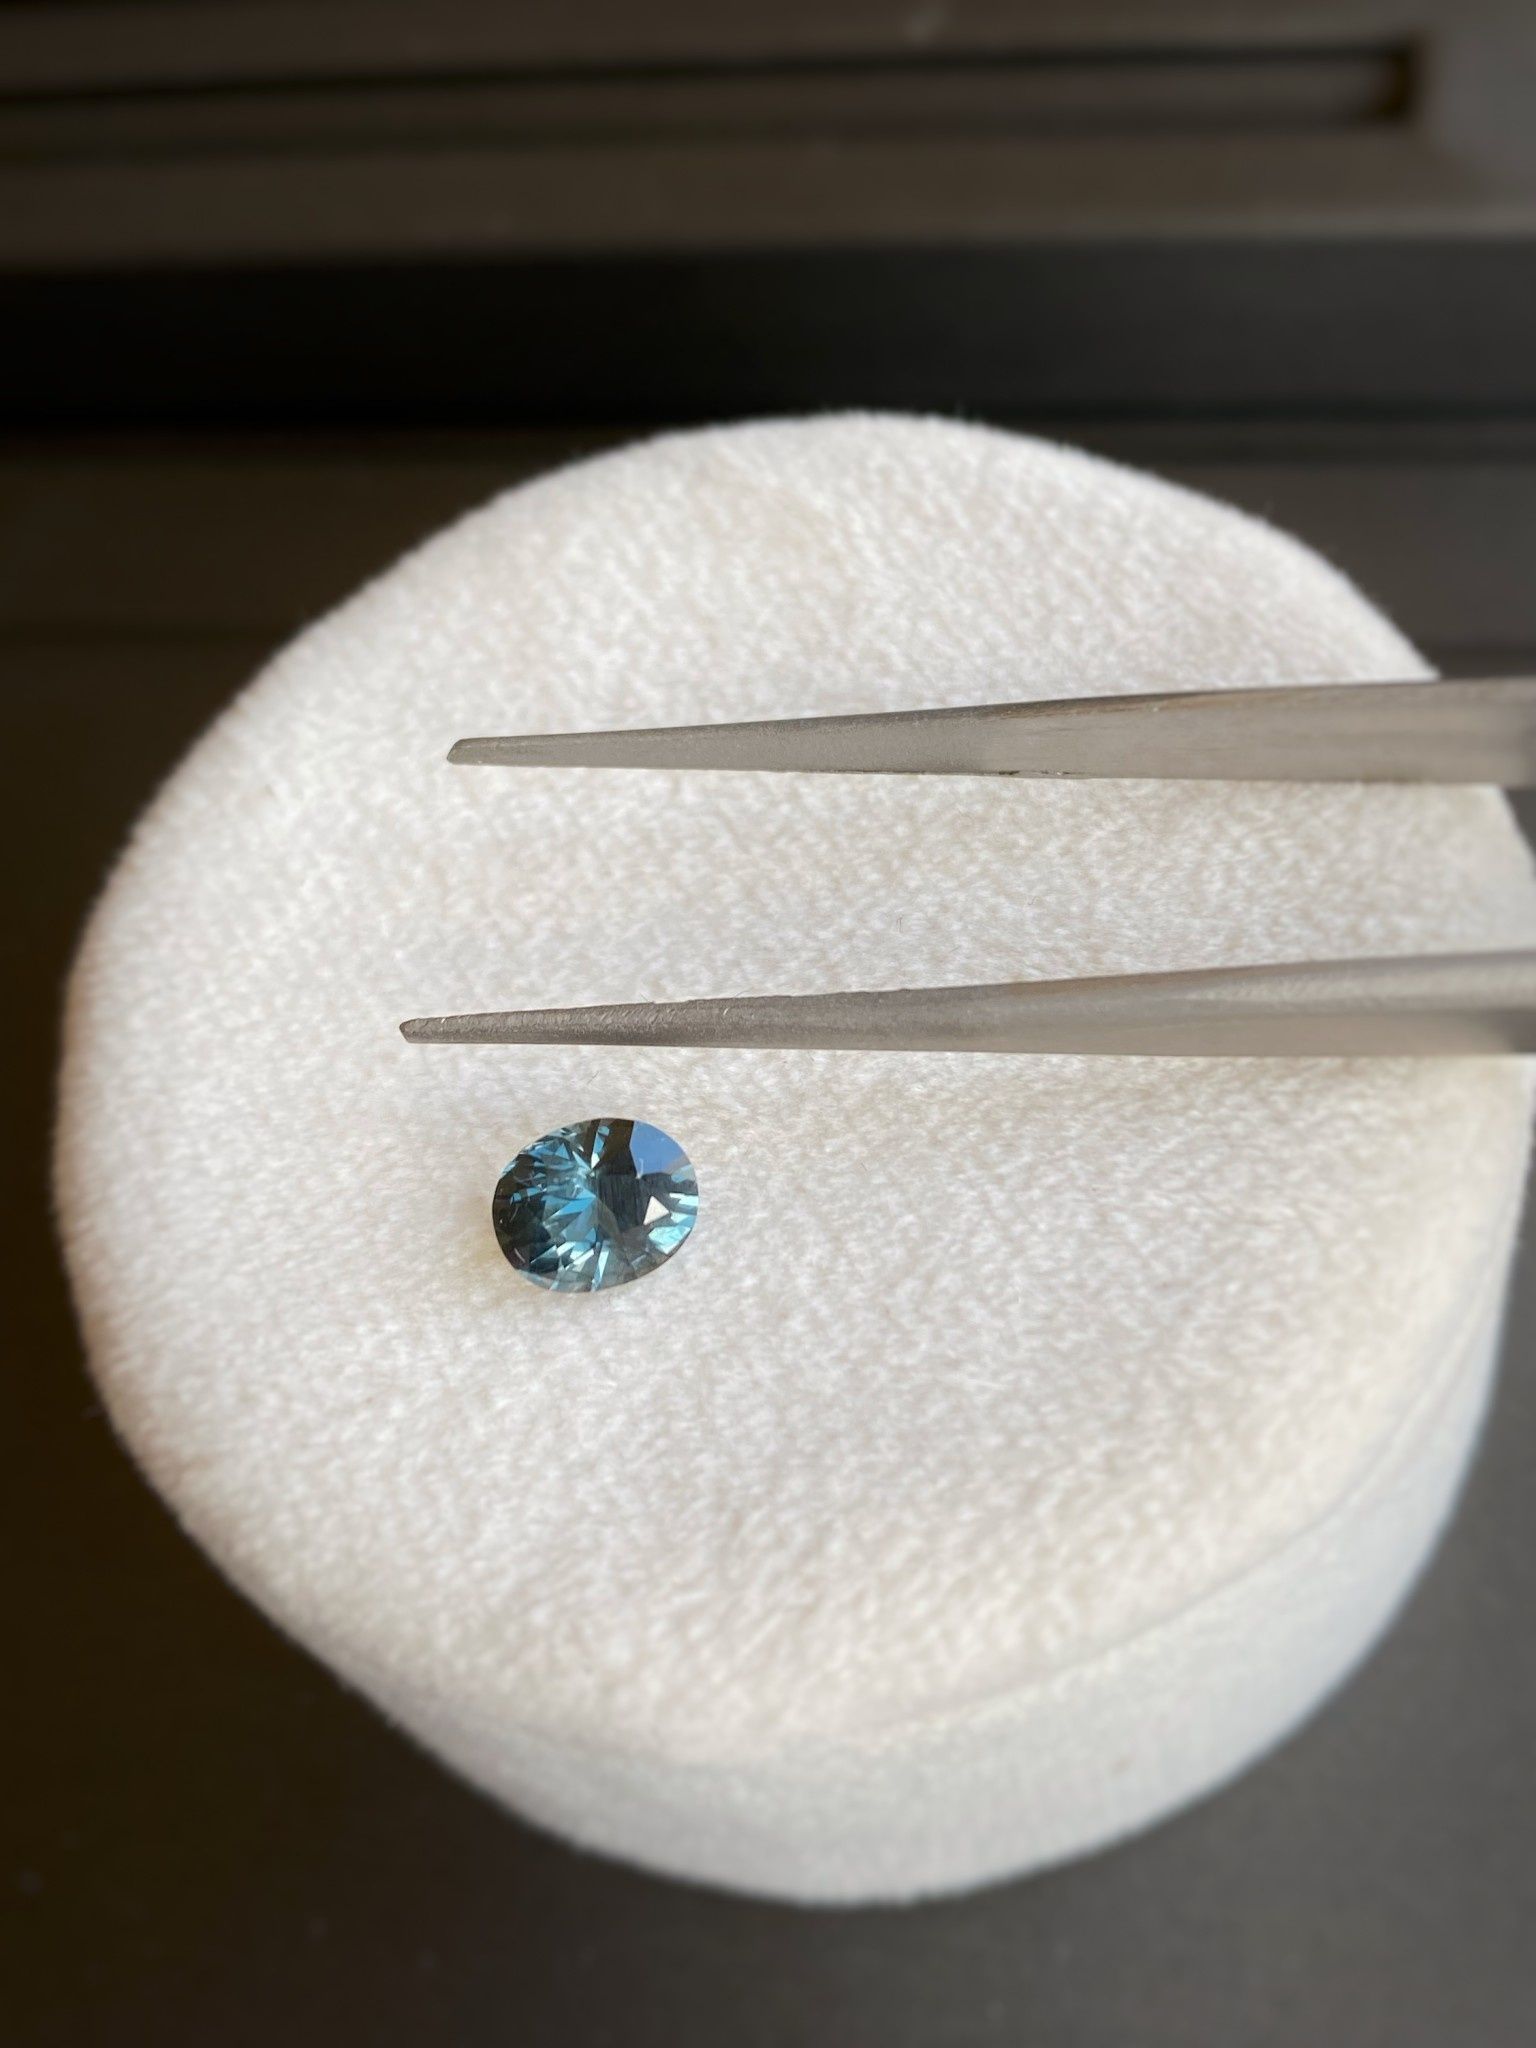 Loose 1.10ct Oval Teal Spinel